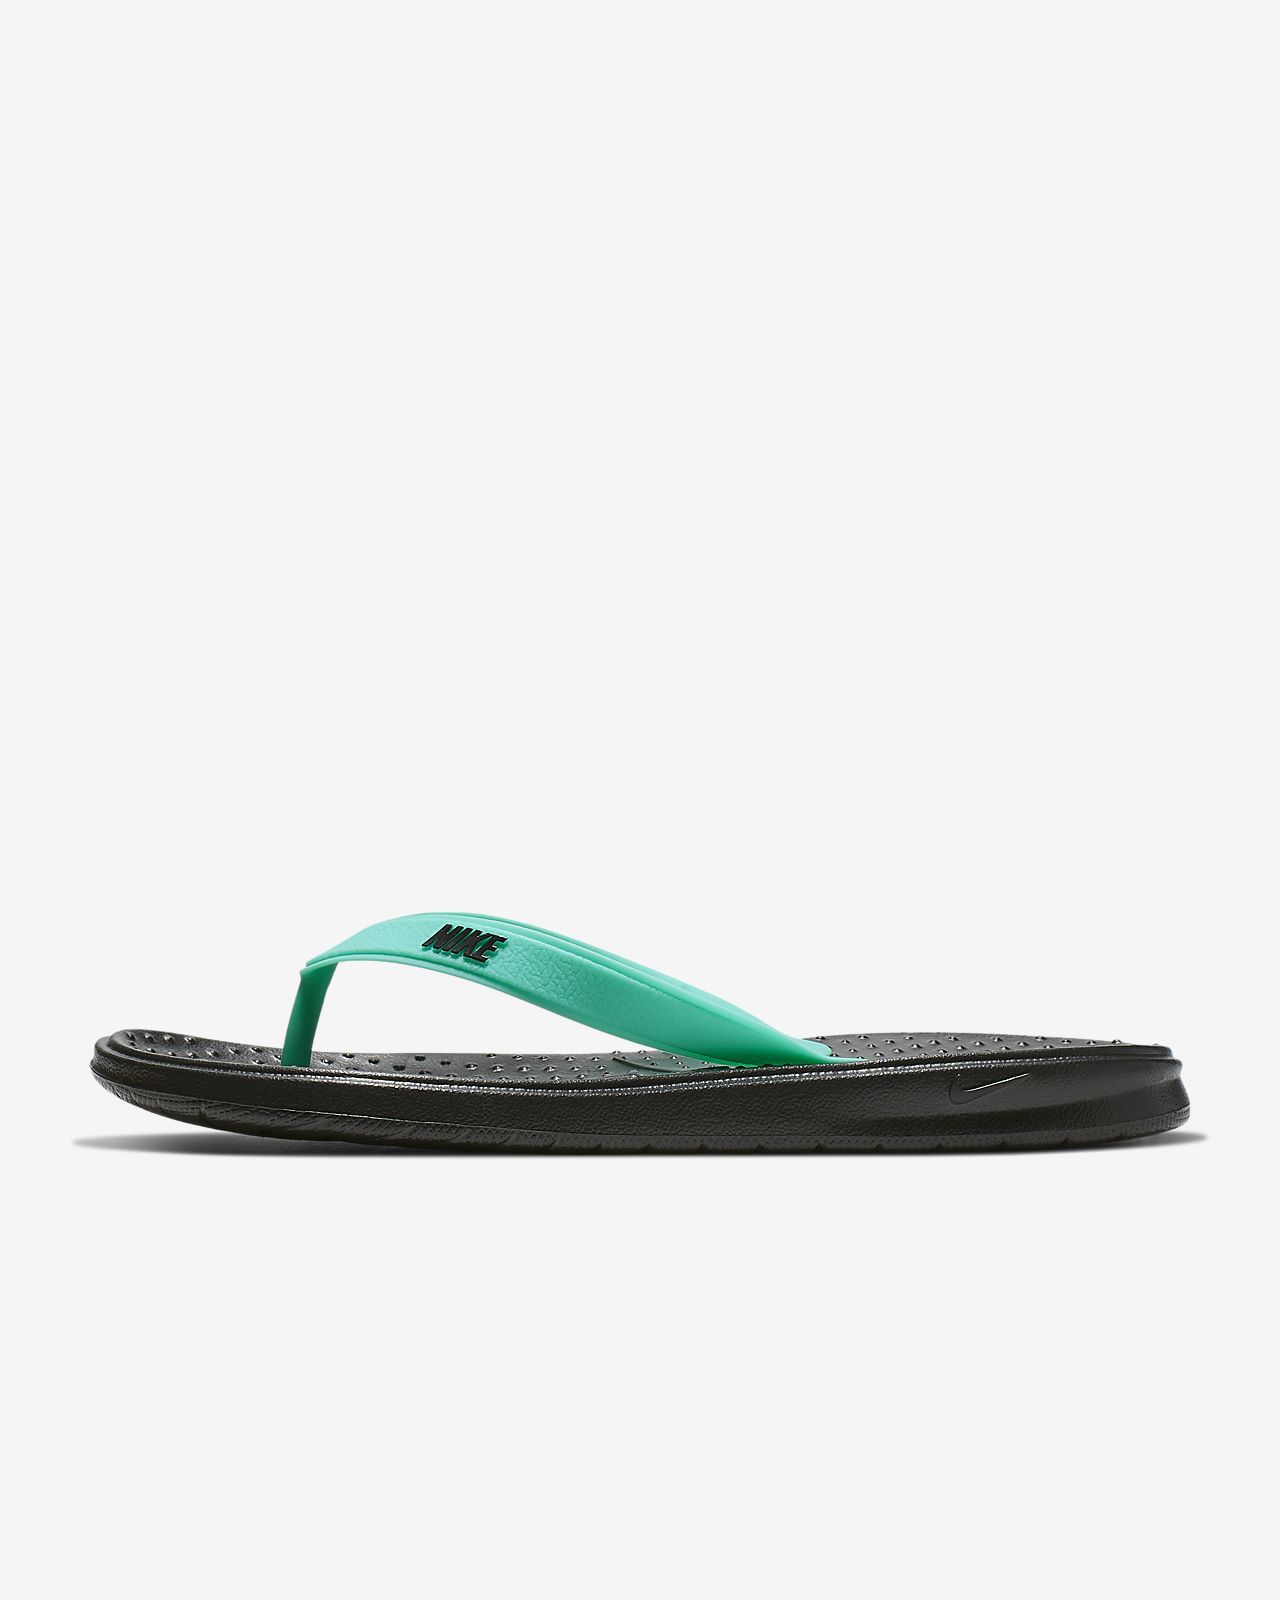 392f4d9ee9ae Nike Solay Women s Flip-Flop. Nike.com IN